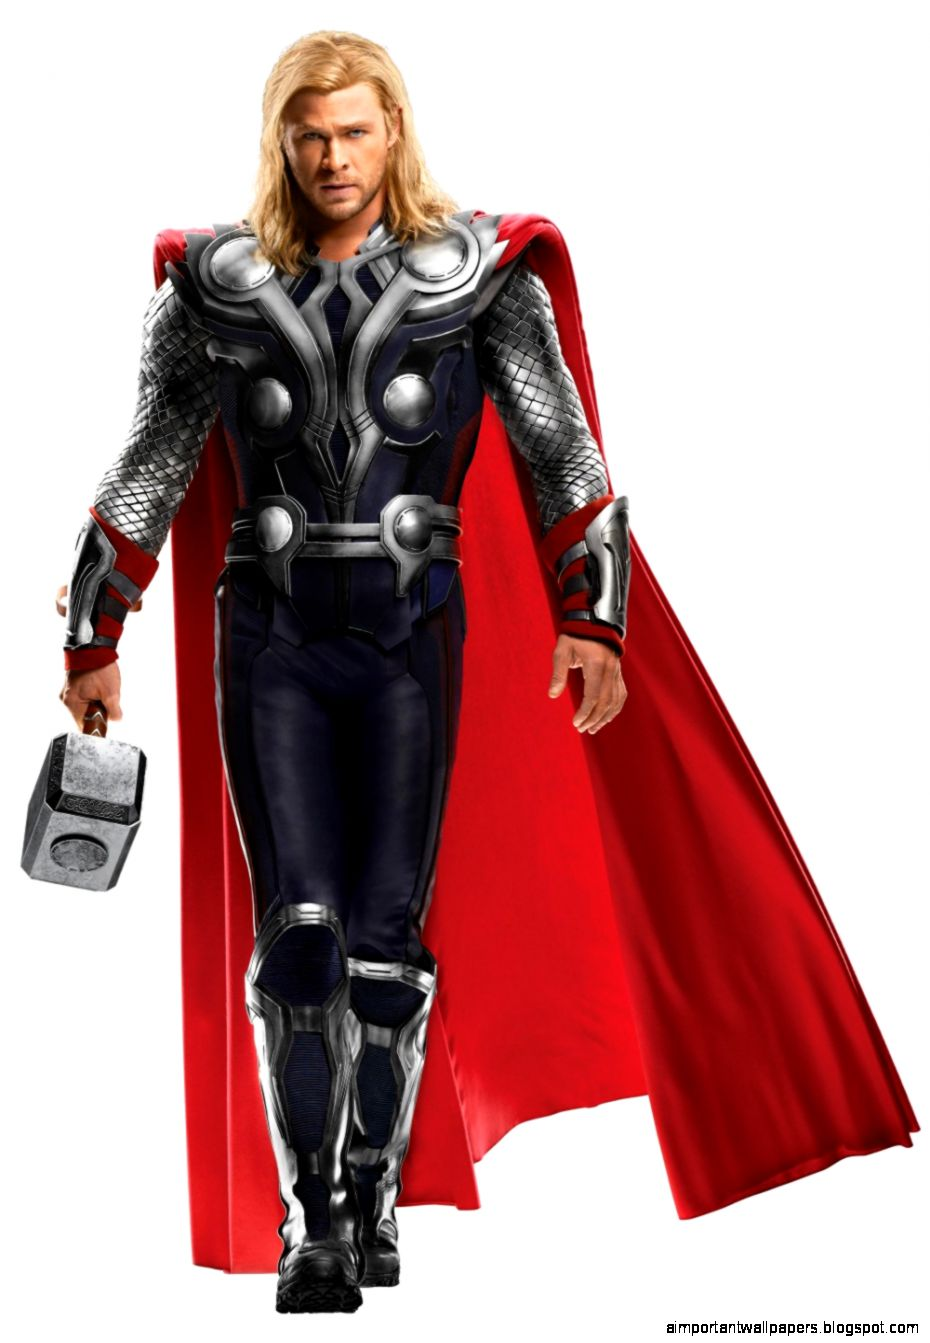 The Avengers Thor | Important Wallpapers